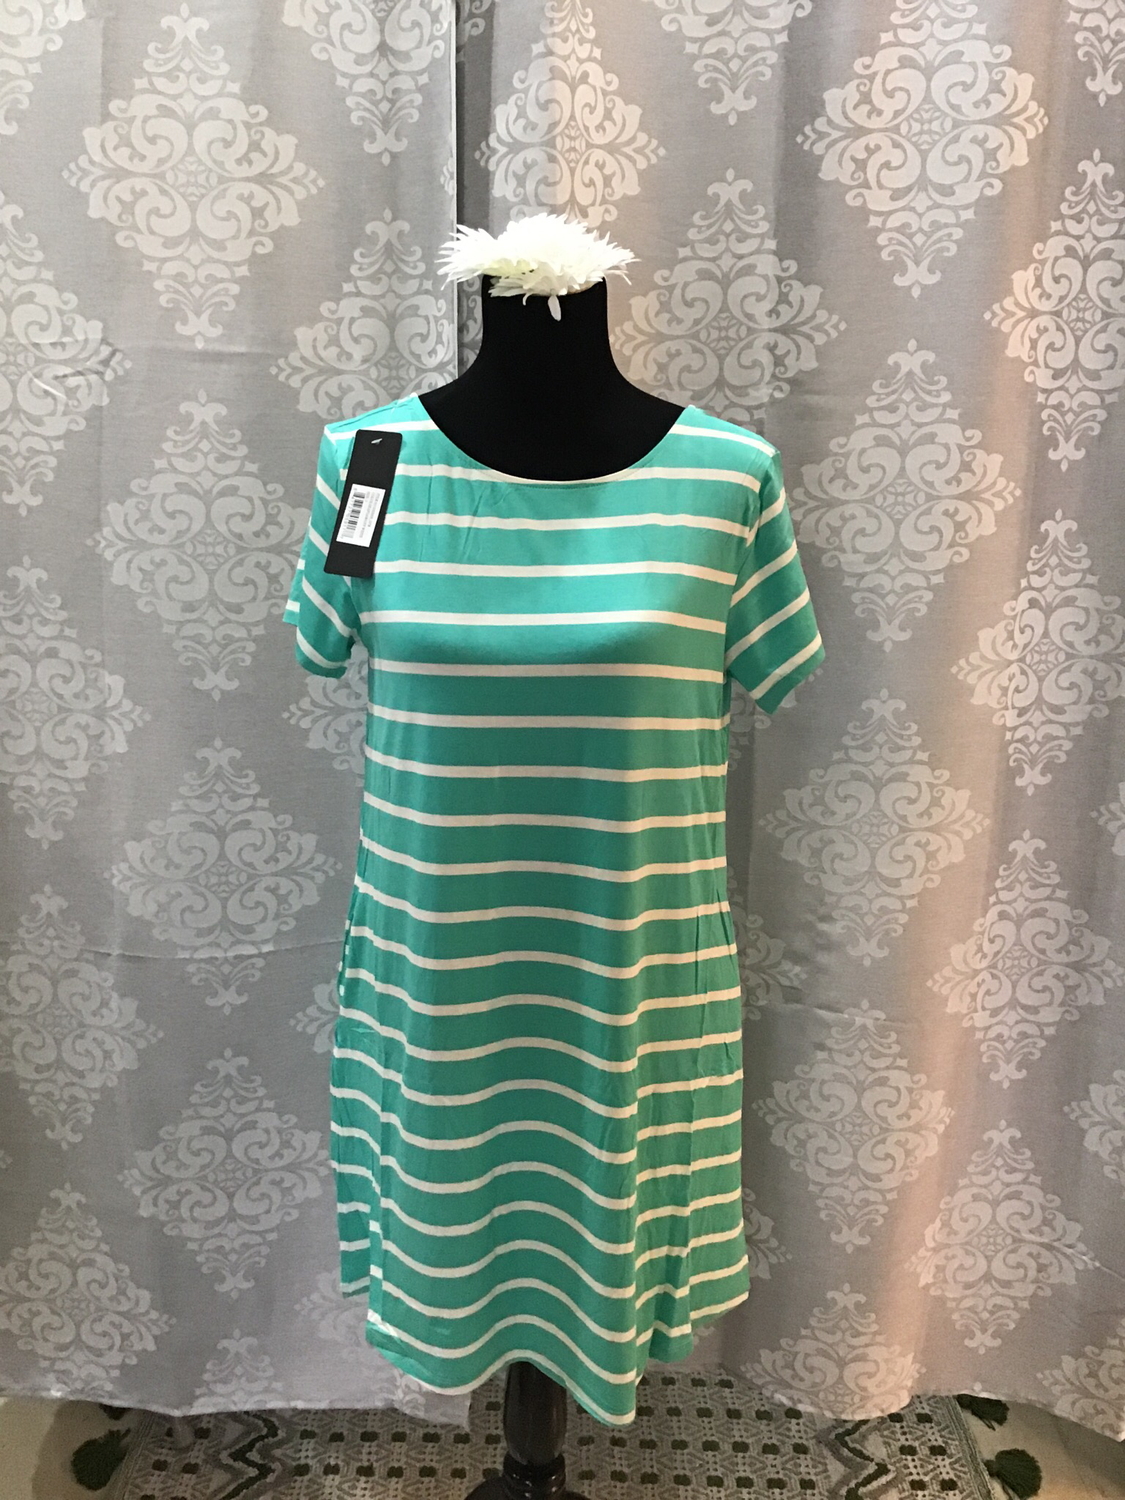 Mint/sea foam and white striped v-neck T-shirt dress criss cross back